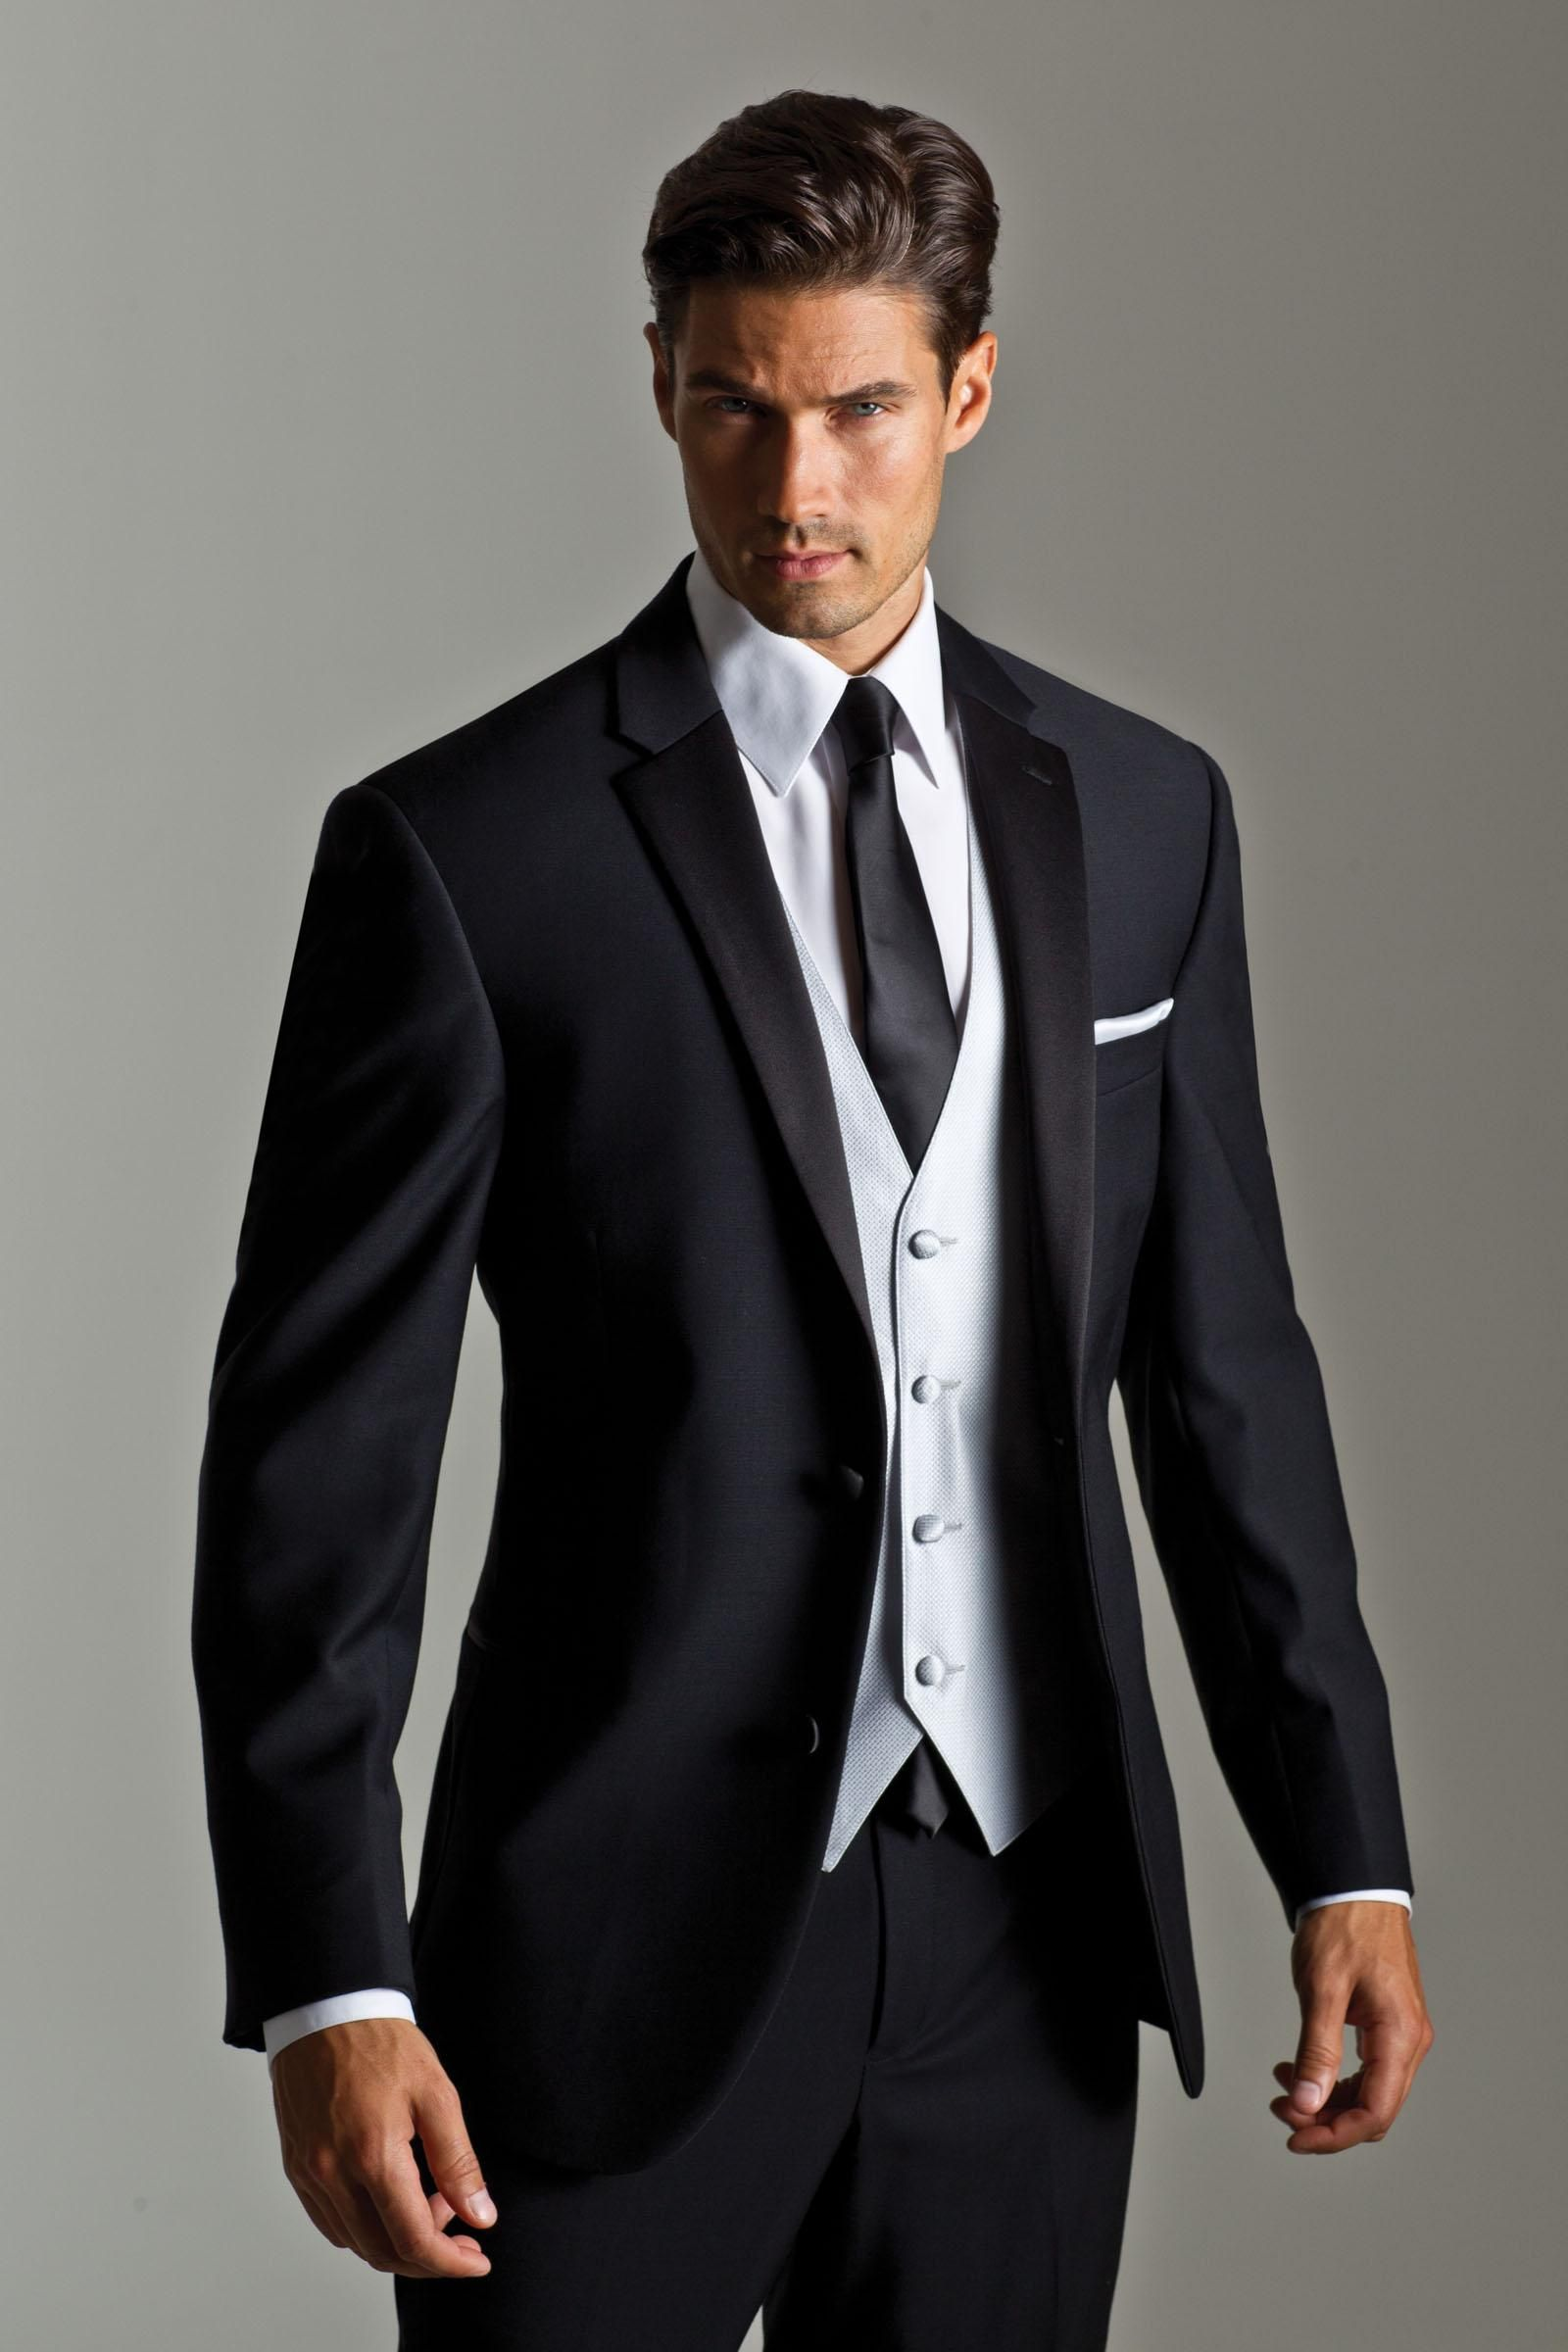 1000  images about Suit on Pinterest | Formal suits, Business men